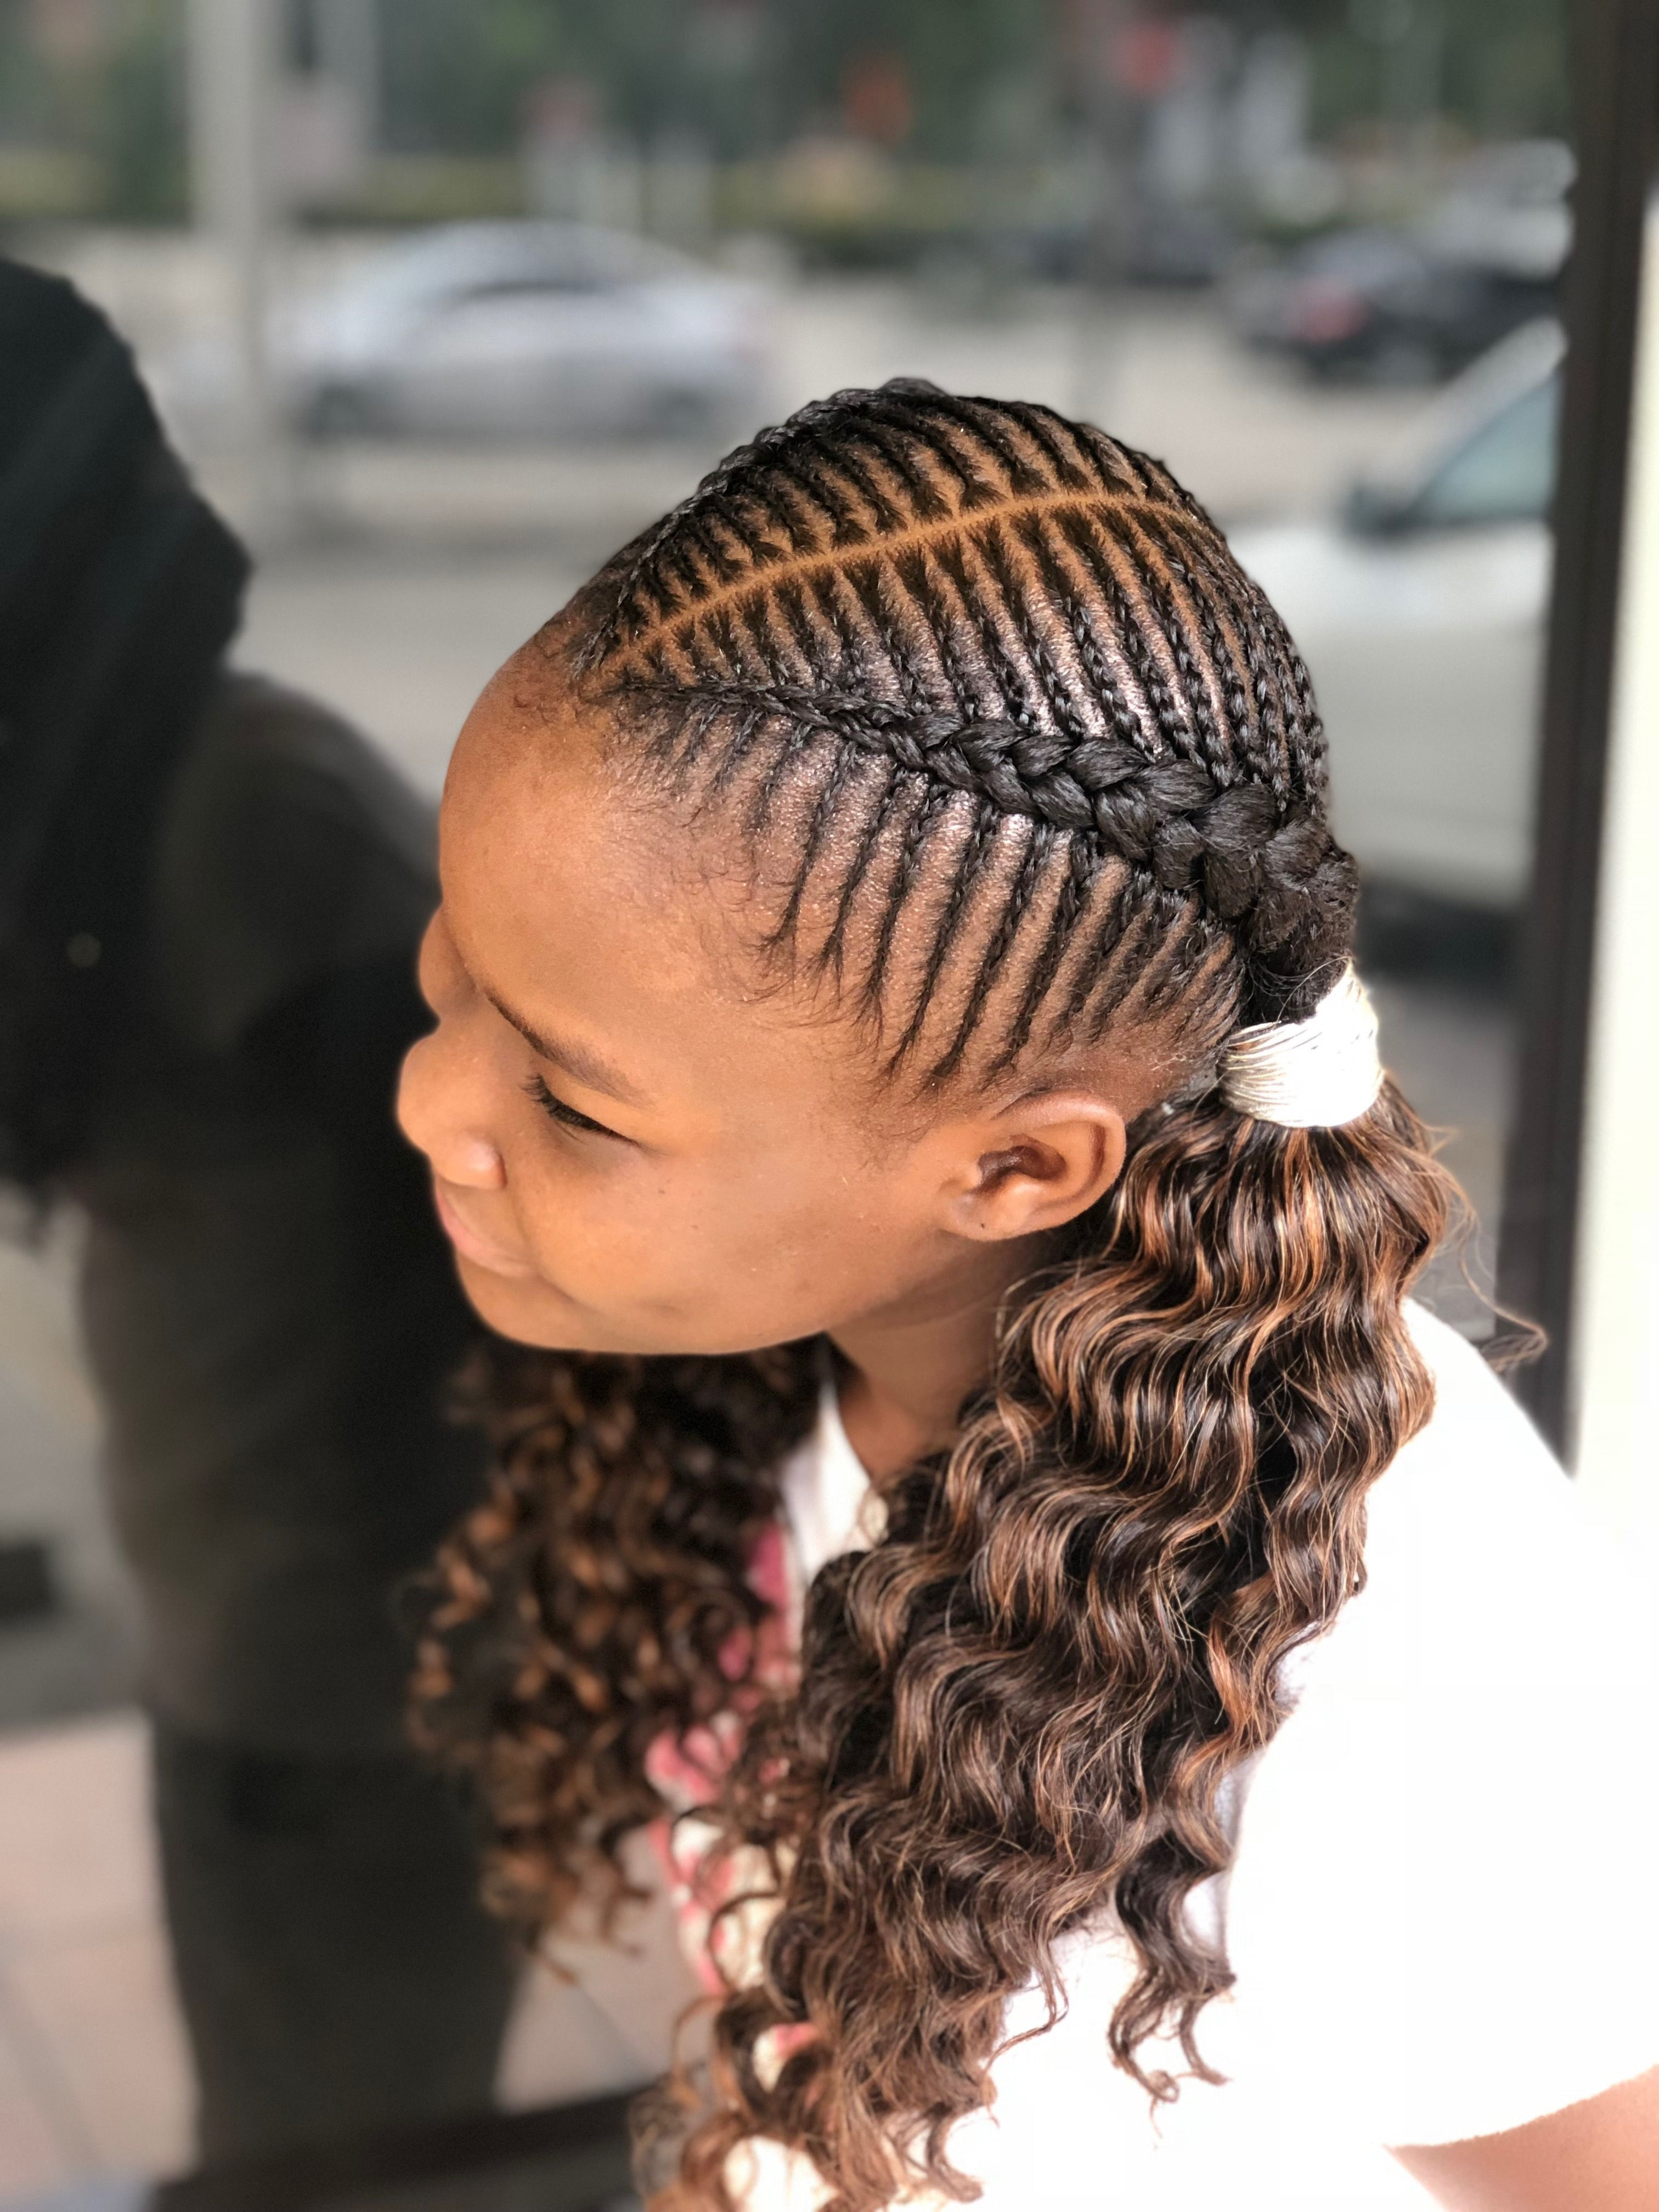 Braided Ponytail For Most Up To Date Stylish Braids Ponytail Hairstyles (View 6 of 20)